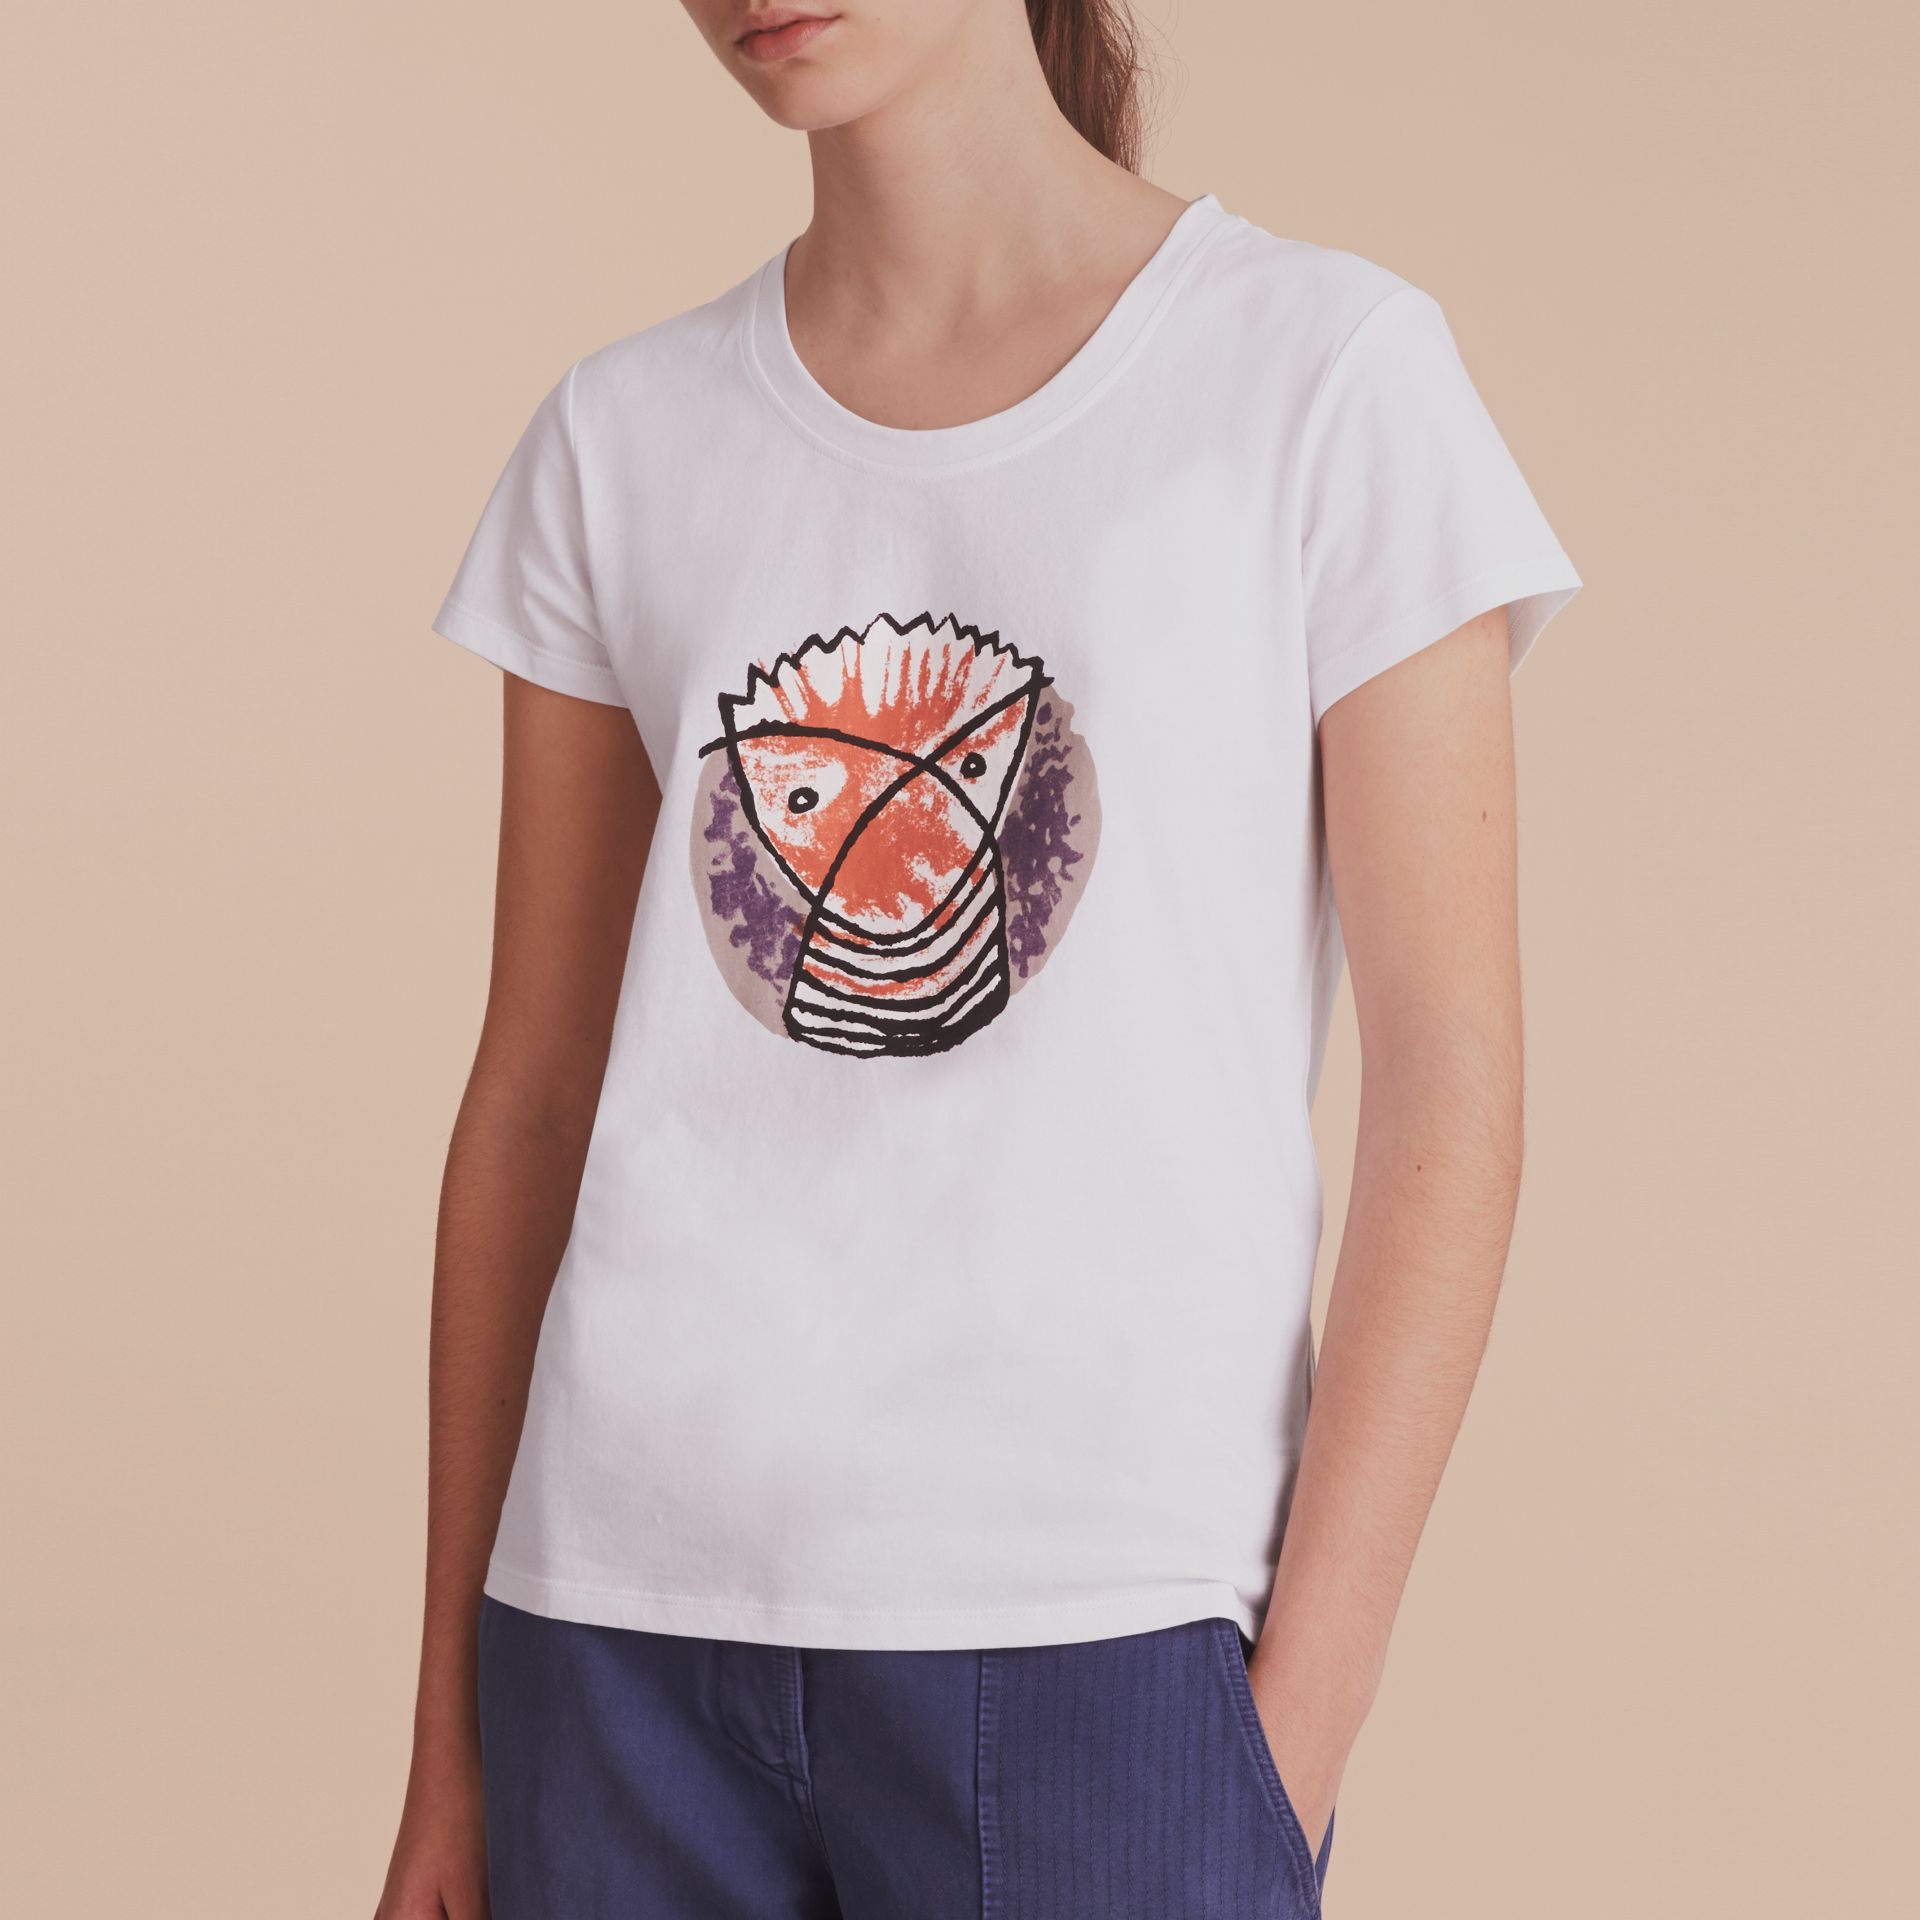 Pallas Heads Print Cotton T-shirt in White - Women | Burberry - gallery image 4